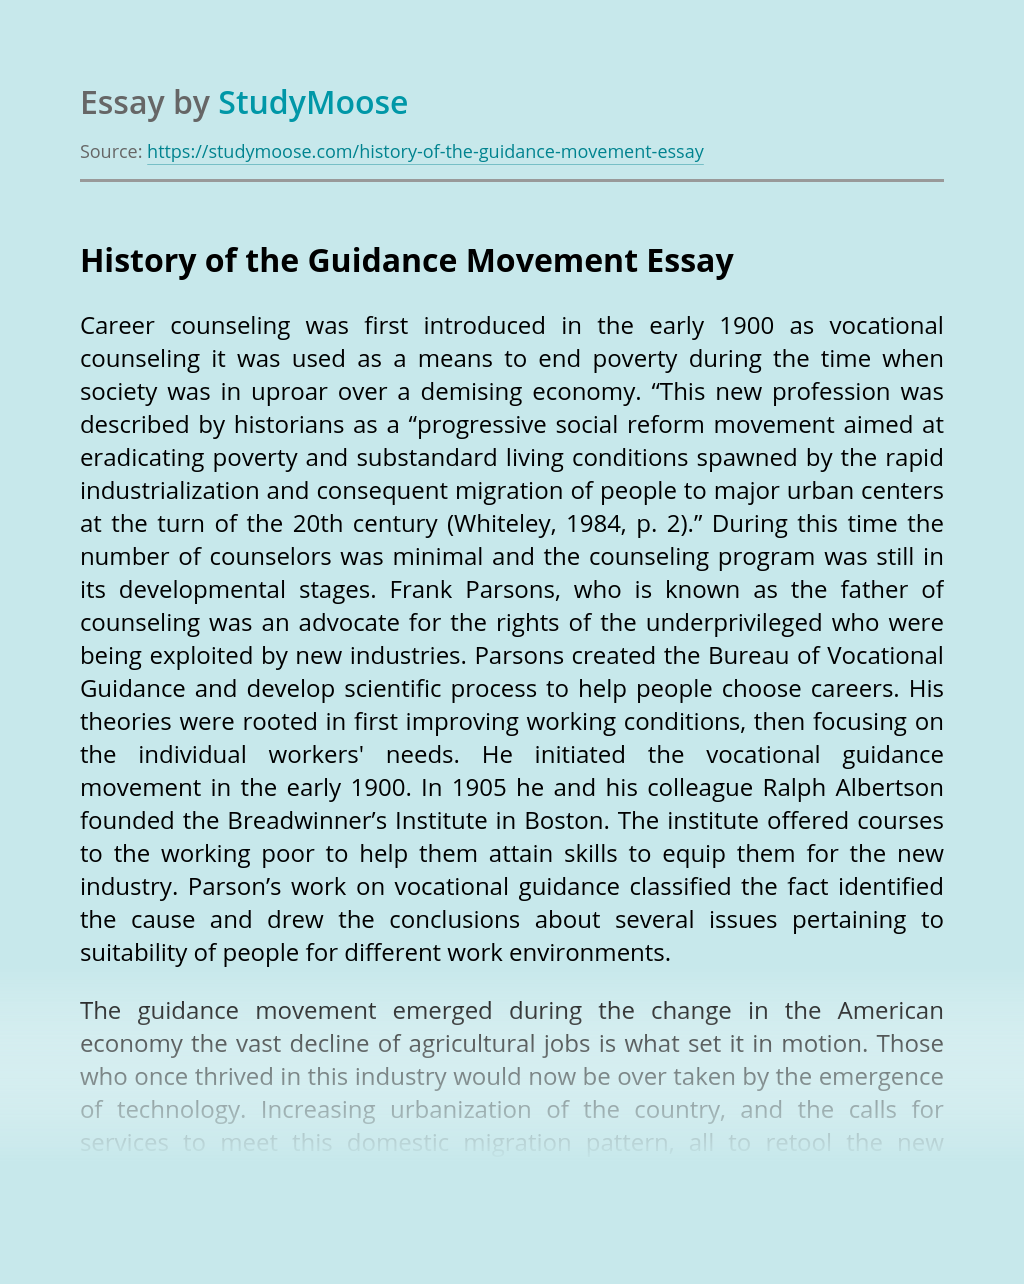 History of the Guidance Movement